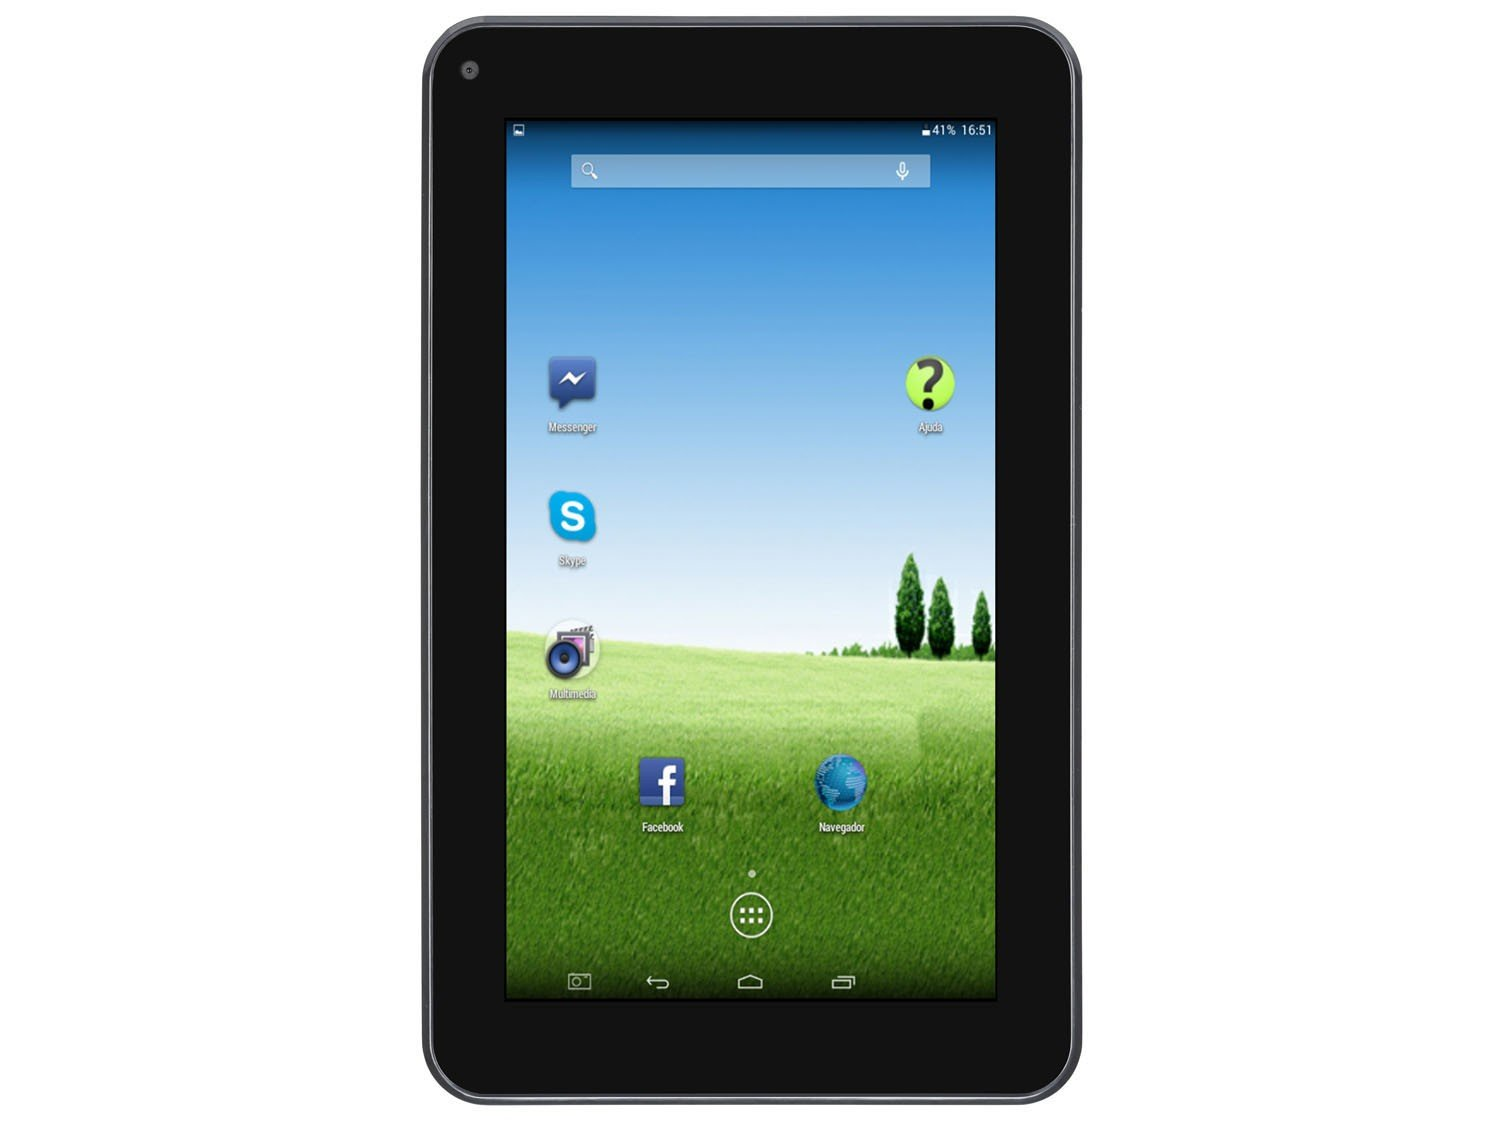 Foto 3 - Tablet DL e-Volution S 8GB 7 Wi-Fi Android 4.4 - Proc. Dual Core Câmera Integrada